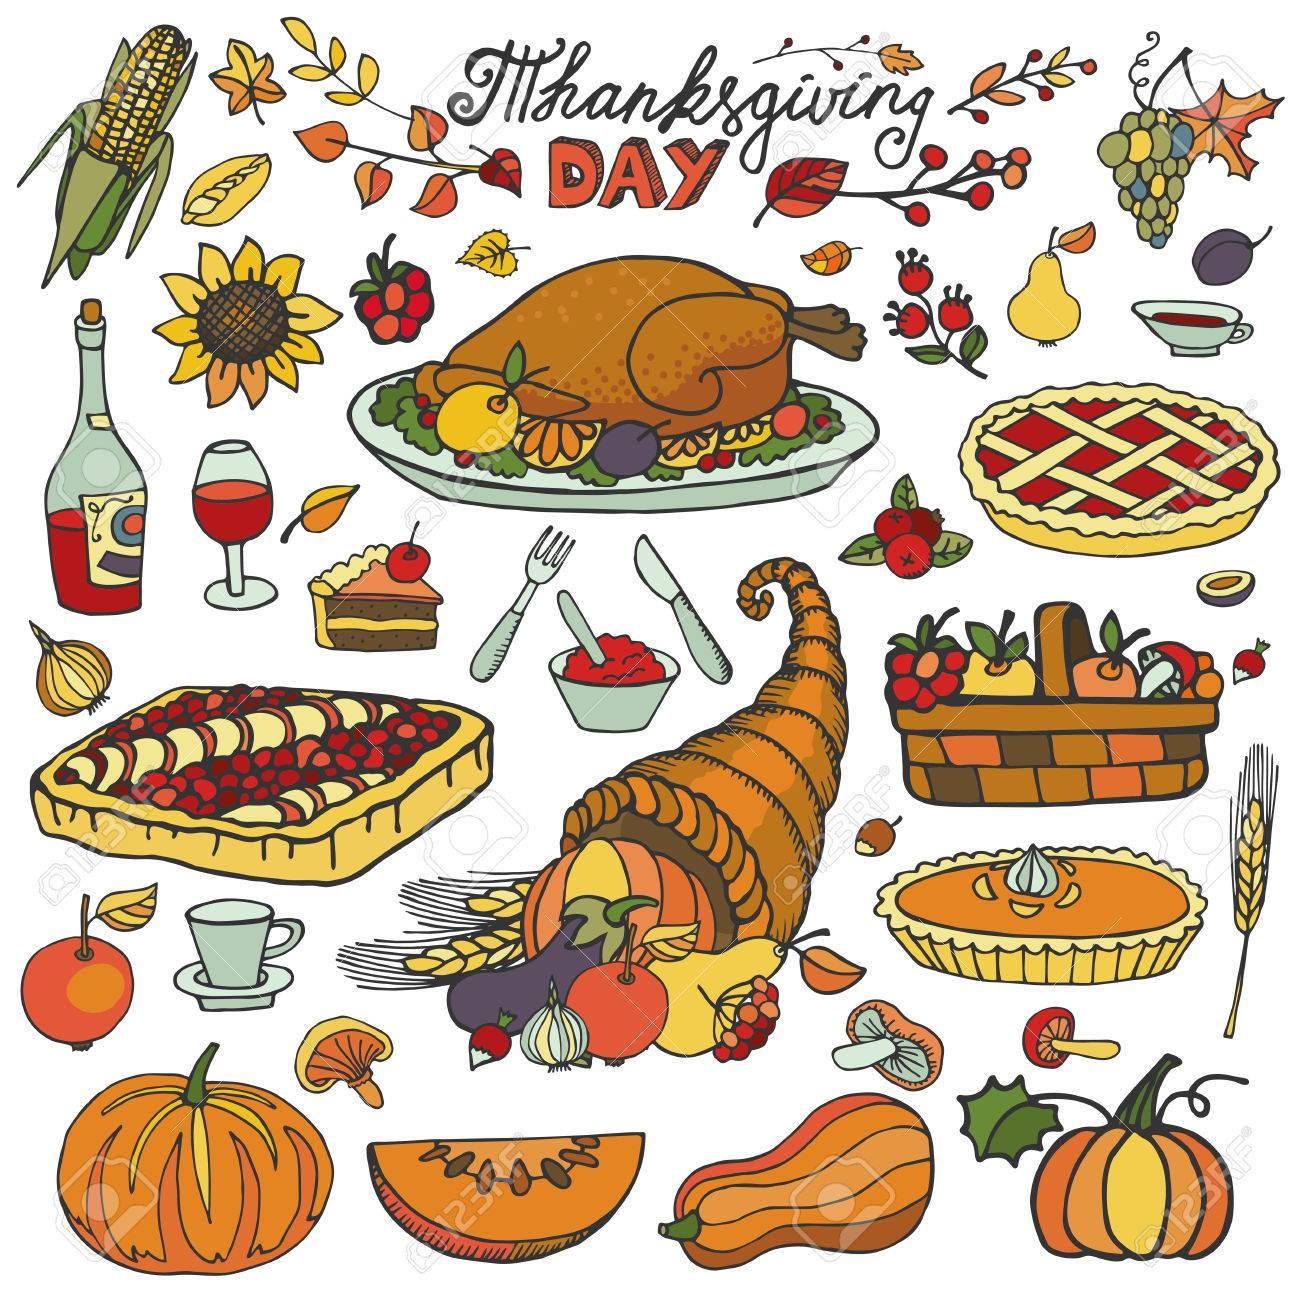 Food day Thanksgiving pictures recommendations dress for on every day in 2019